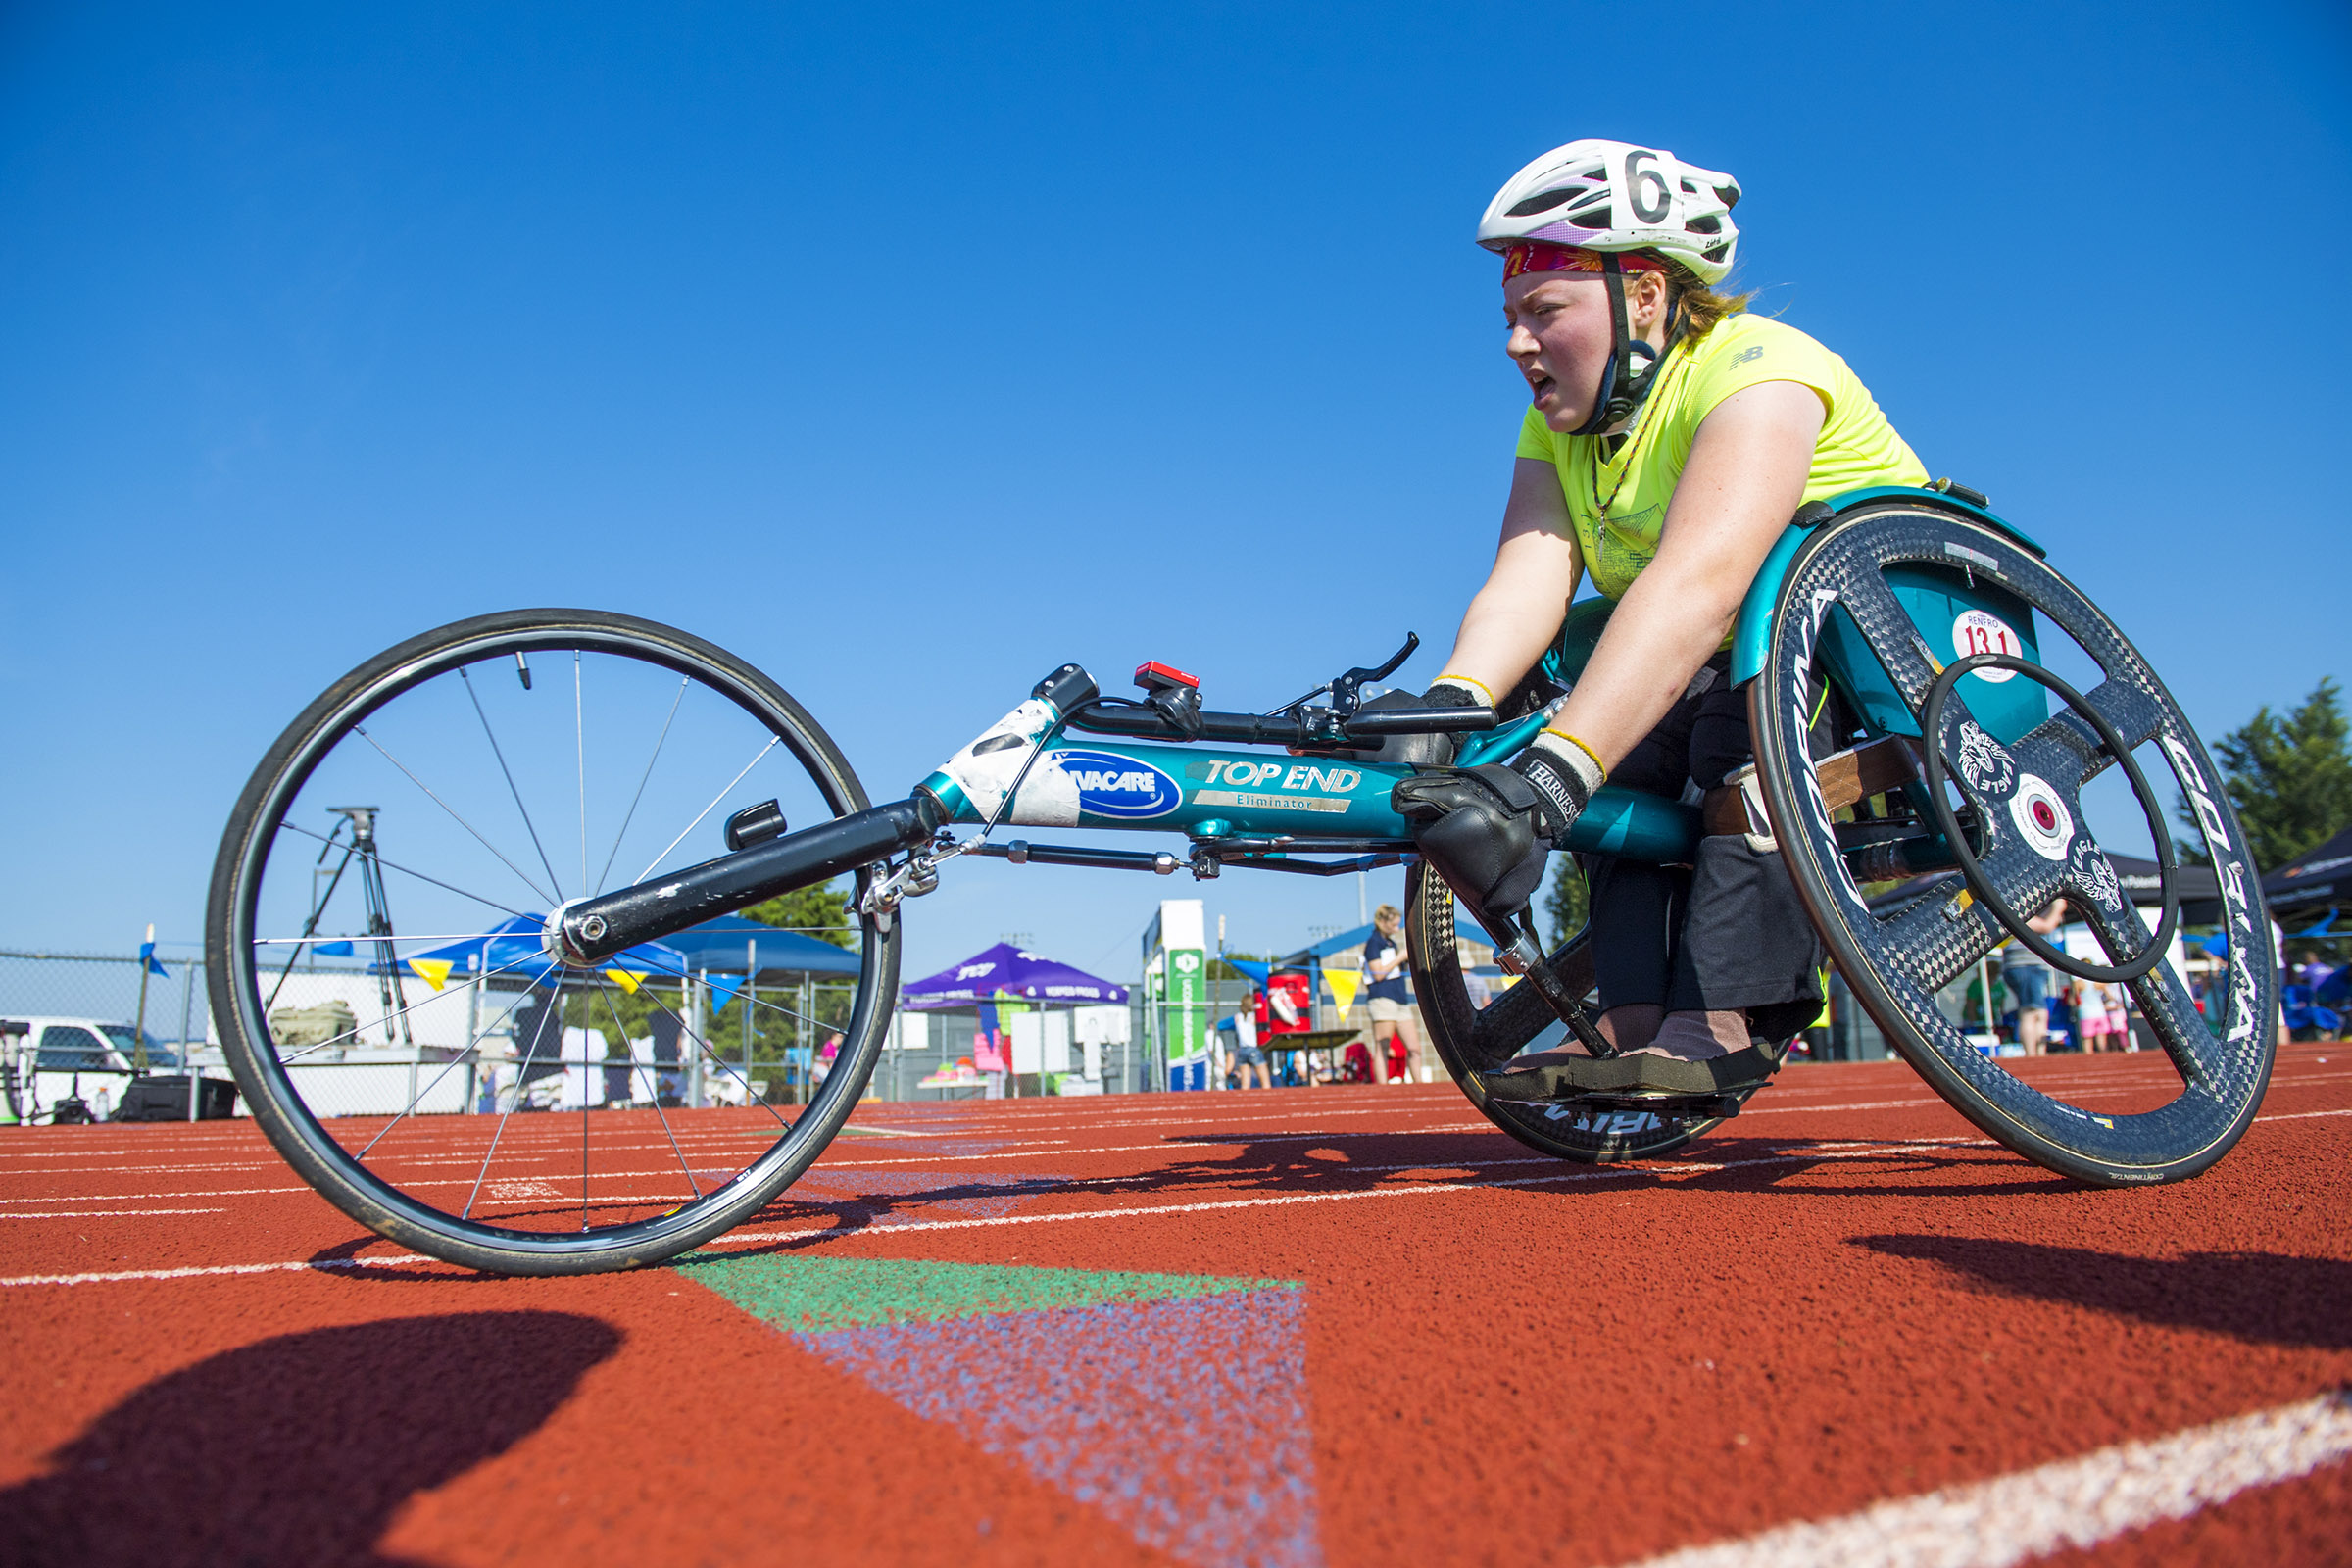 A disabled, female athlete rides a cycle along a track.